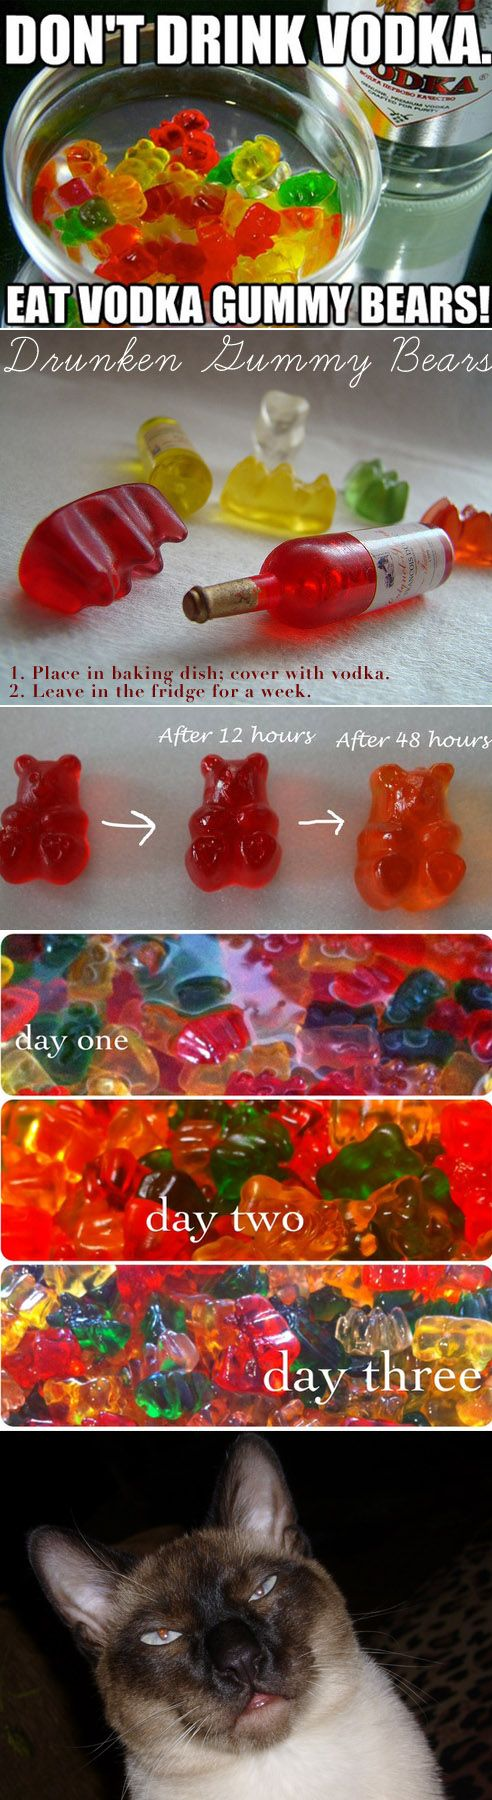 And more excitingly, vodka gummy bears.